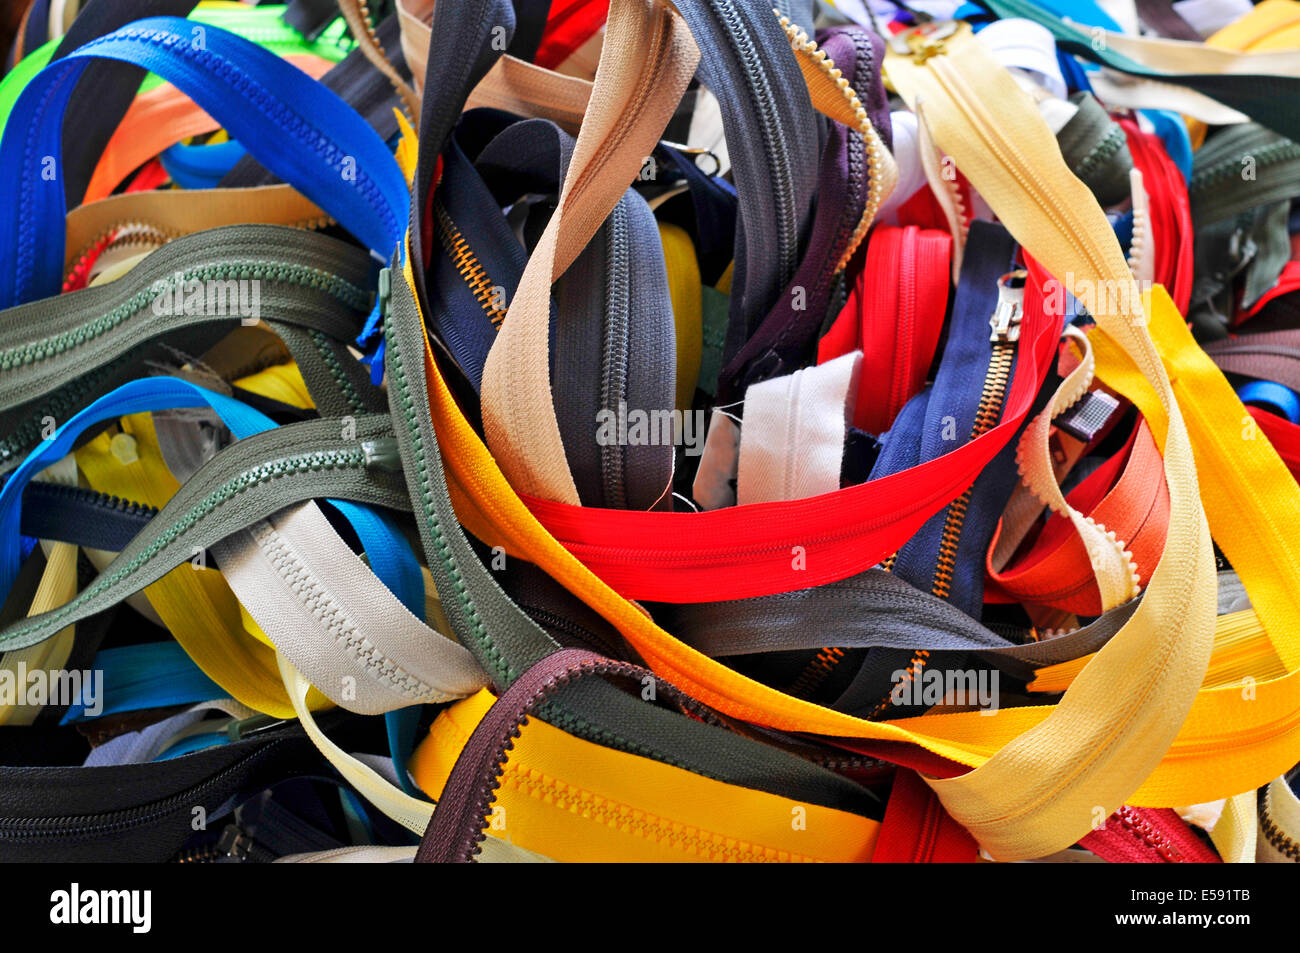 a pile of zippers of many sizes and colors - Stock Image